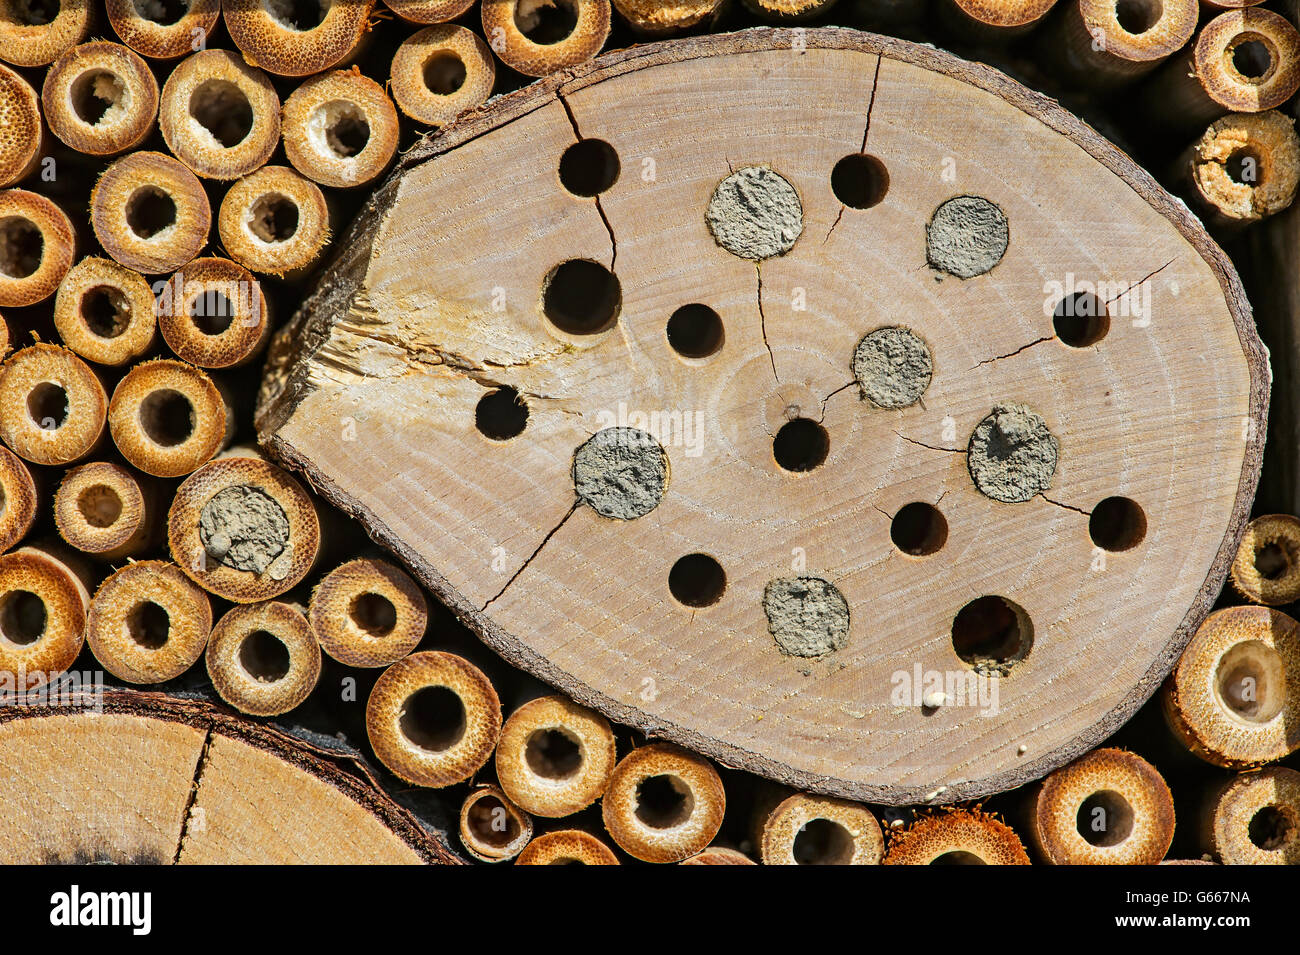 Bee hotel, artificial nesting aid for mason bees, breeding tunnels partially sealed with clay soil - Stock Image